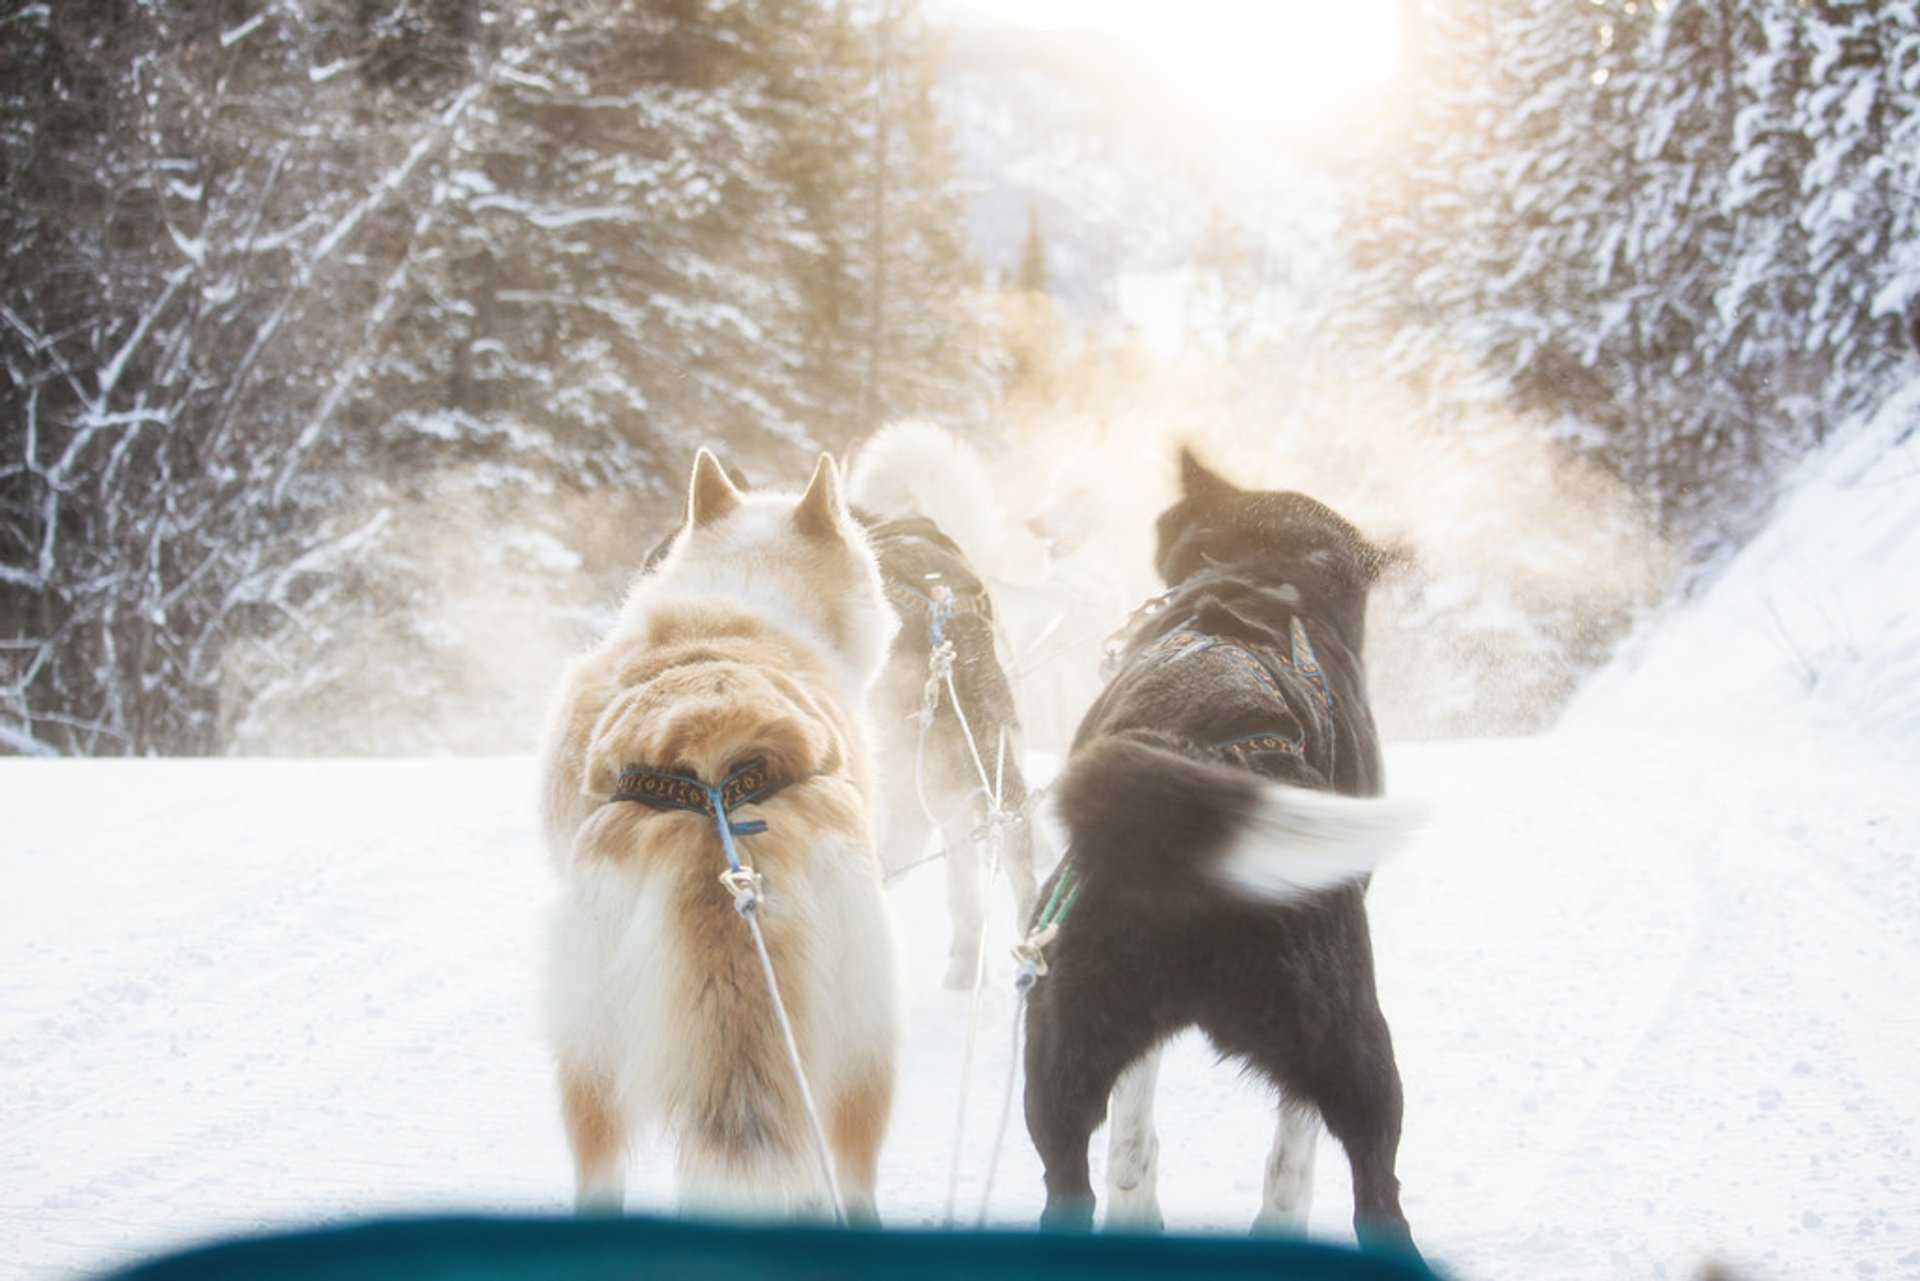 Dog Sledding in Banff & Jasper National Parks 2019 - Best Time